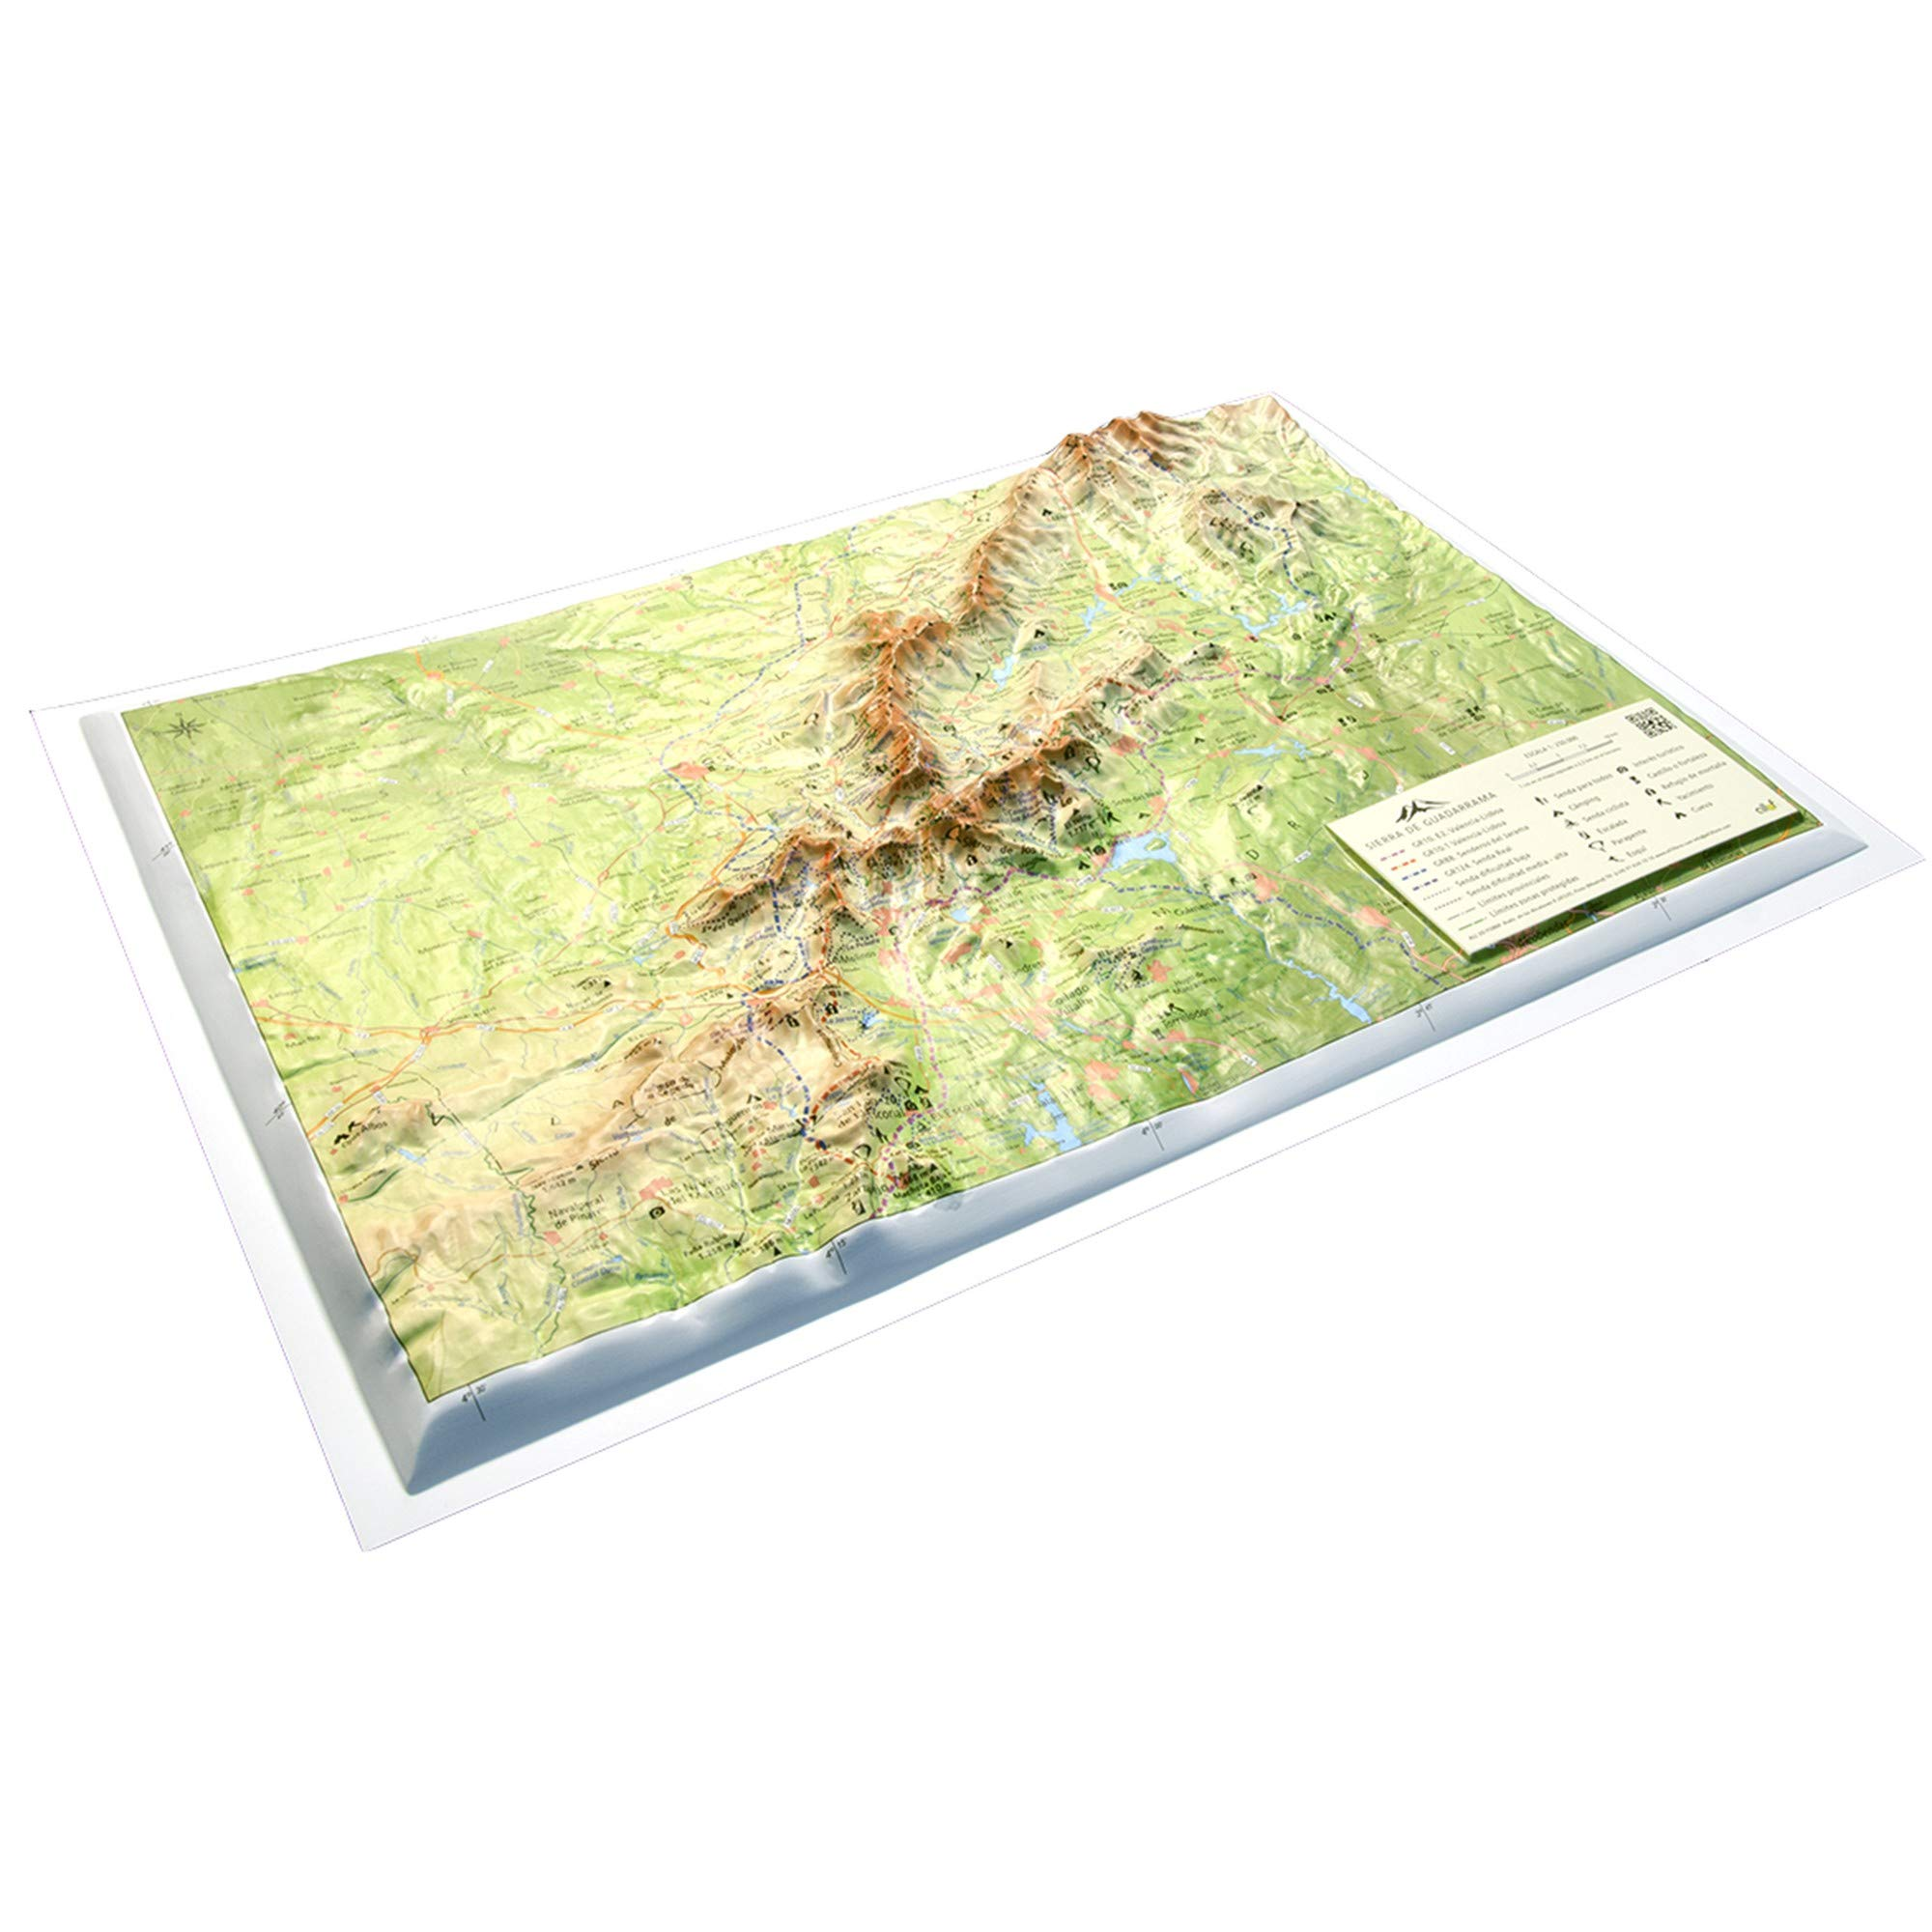 Mapa en relieve Sierra de Guadarrama: Escala 1:250.000: Amazon.es: All 3D Form S.L.: Libros